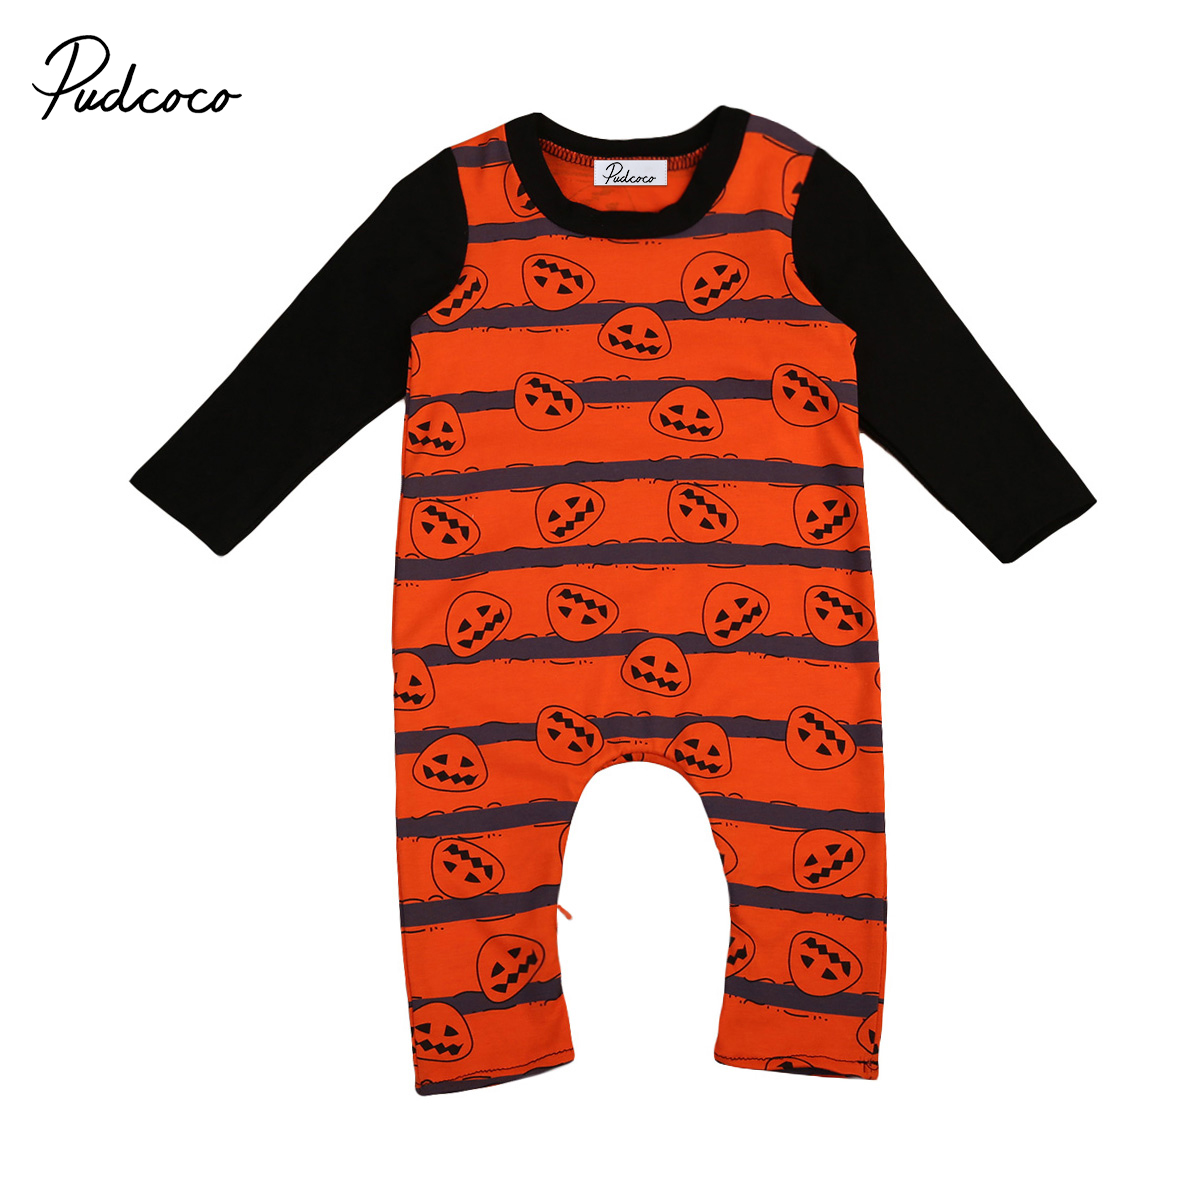 Pudcoco Cute Halloween Costume Toddler Baby Boy Pumpkin Outfits Long Sleeve Romper Jumpsuits Fashion Cool Bbay Boy Romper